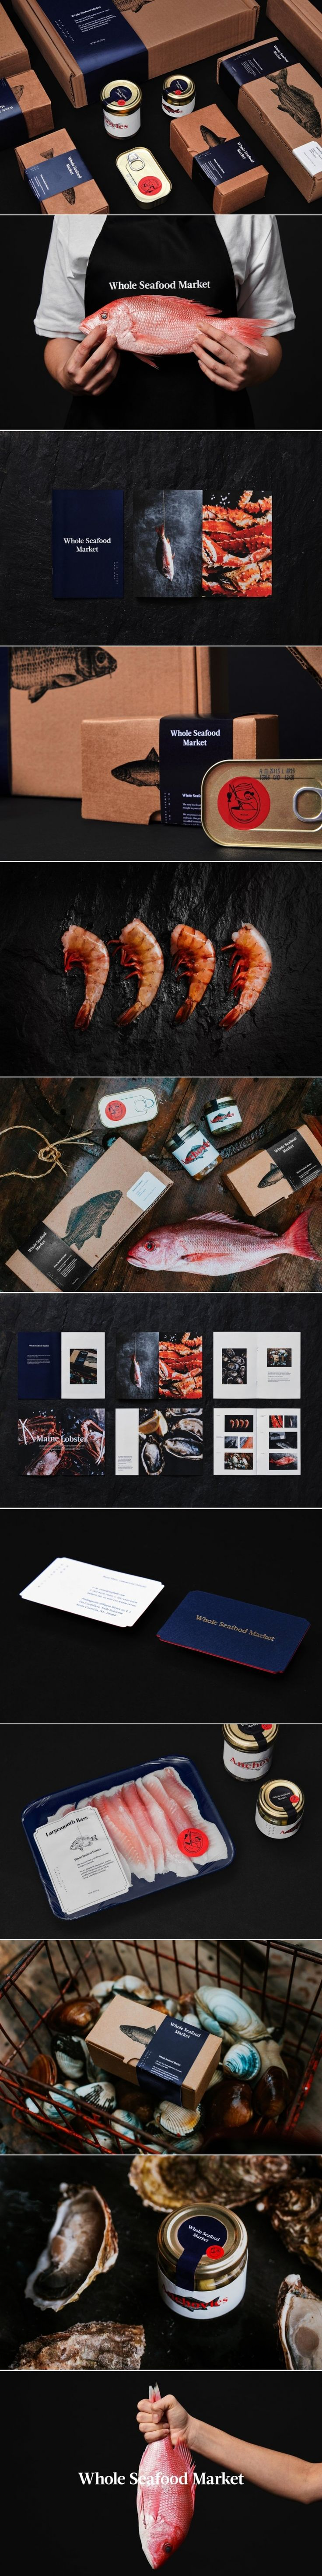 This Take on Seafood Packaging Comes With an Elegantly Modern Look — The Dieline | Packaging & Branding Design & Innovation News